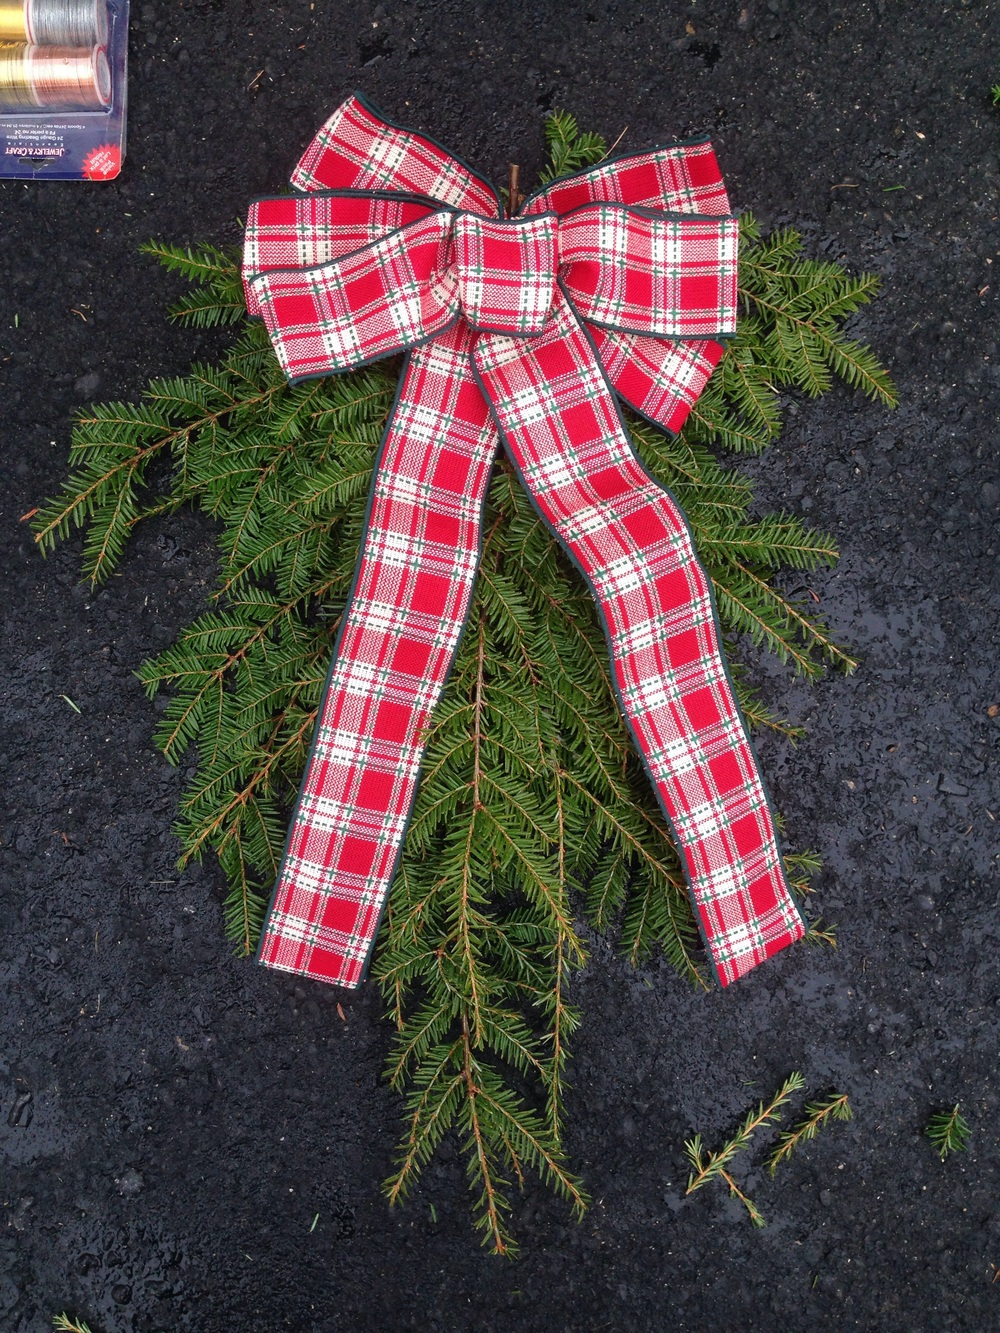 Add a ribbon to the DIY Christmas swag